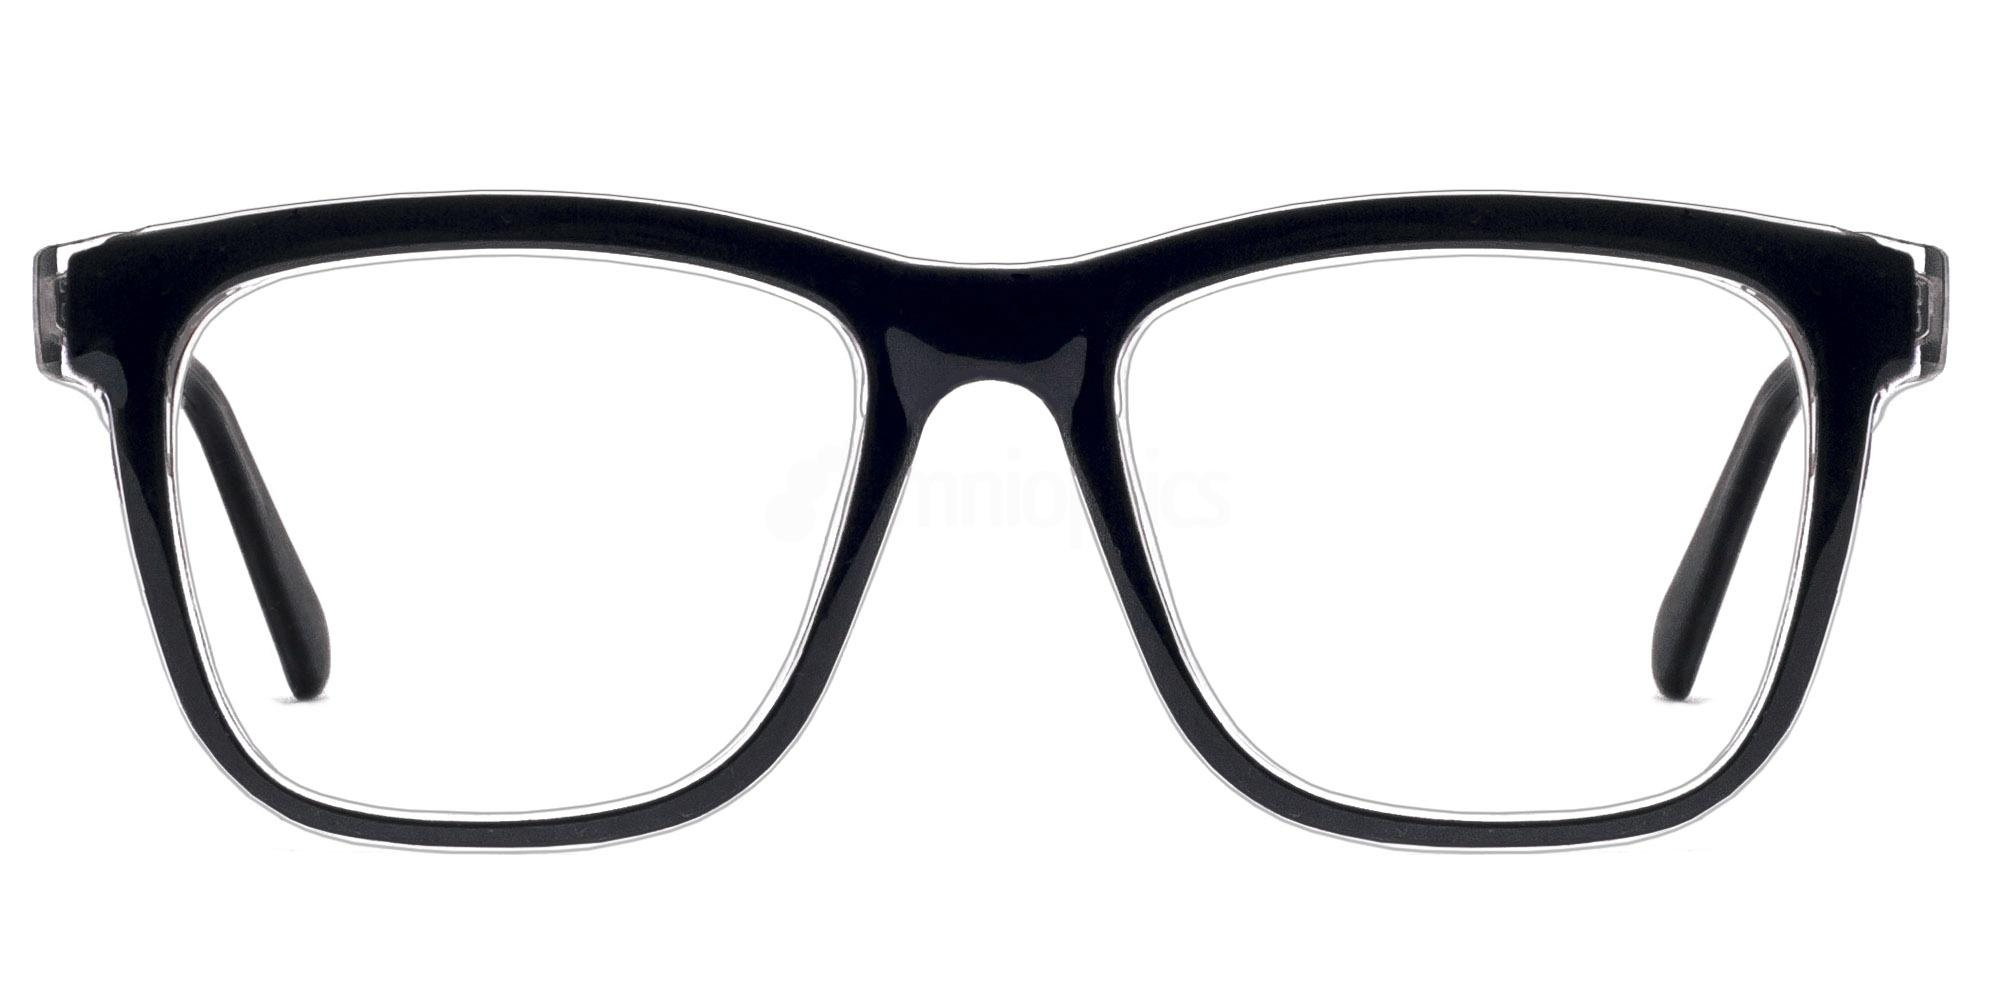 C44 2444 - Black and Purple Glasses, Savannah